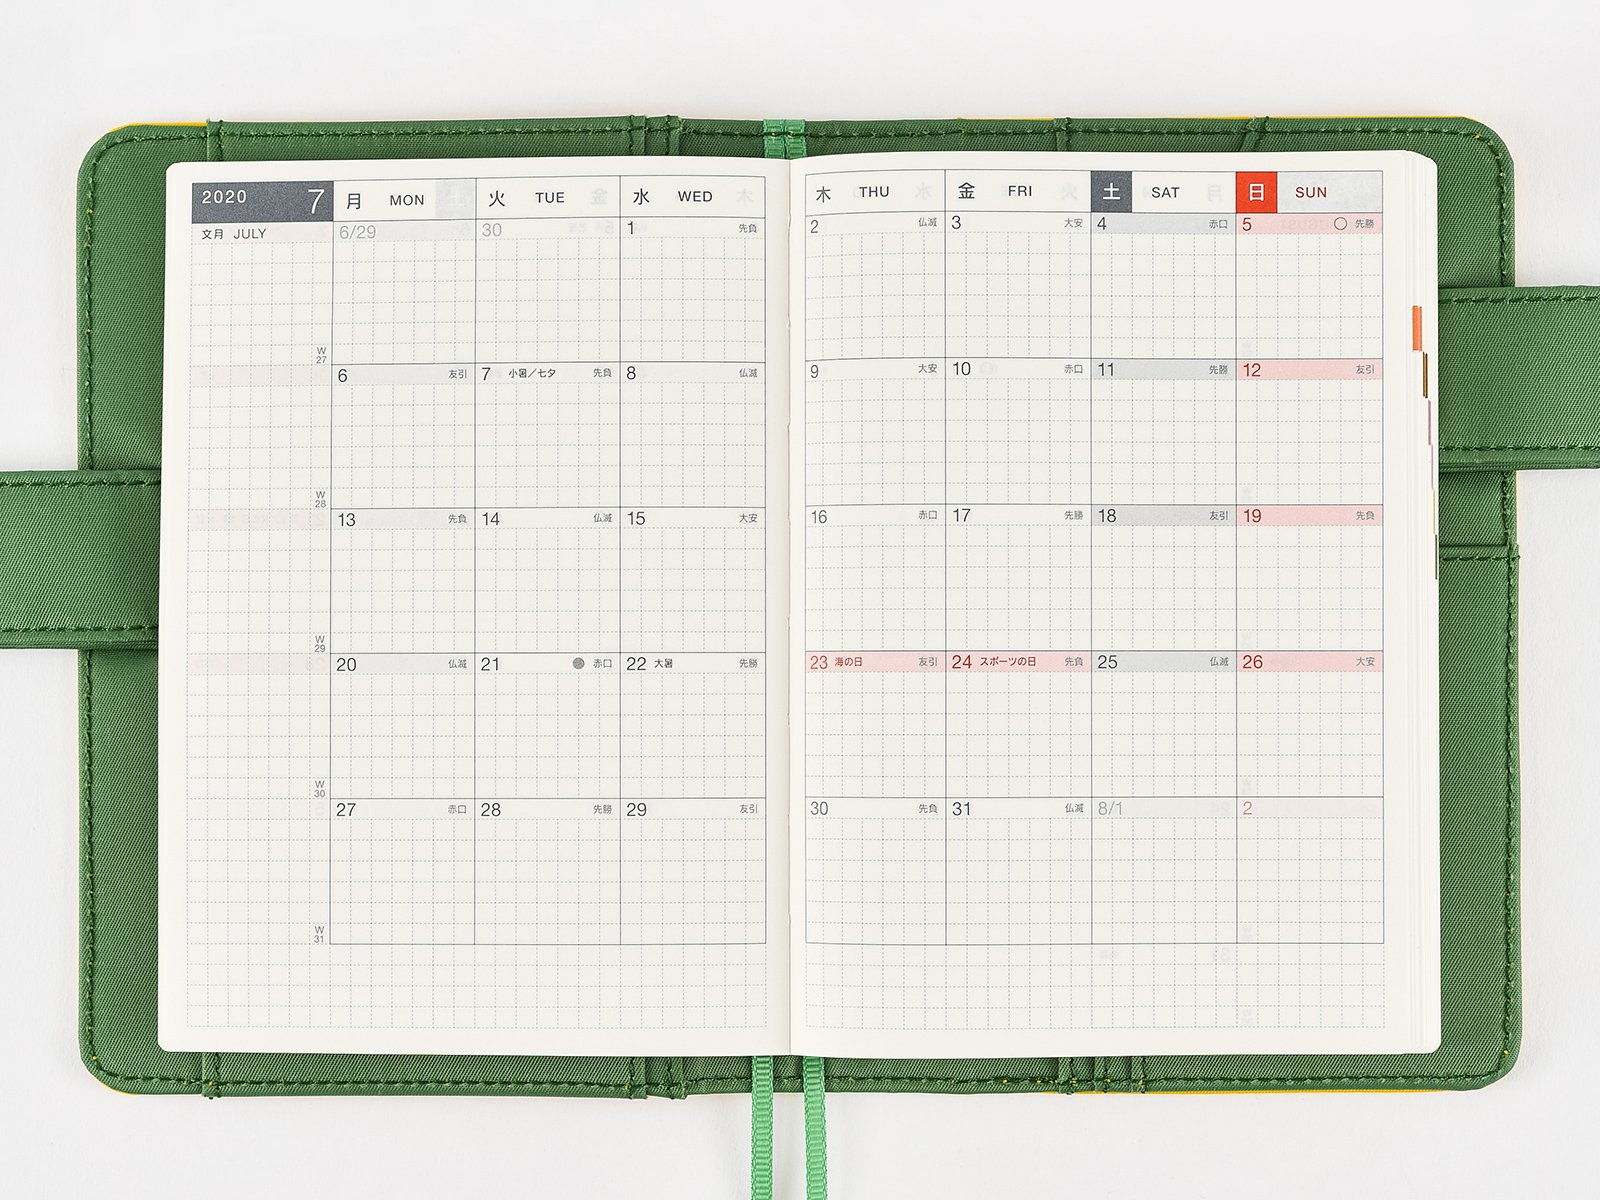 2020 Monthly Calendars With Time Slots | Example Calendar Monthly March Schedule With Time Slots